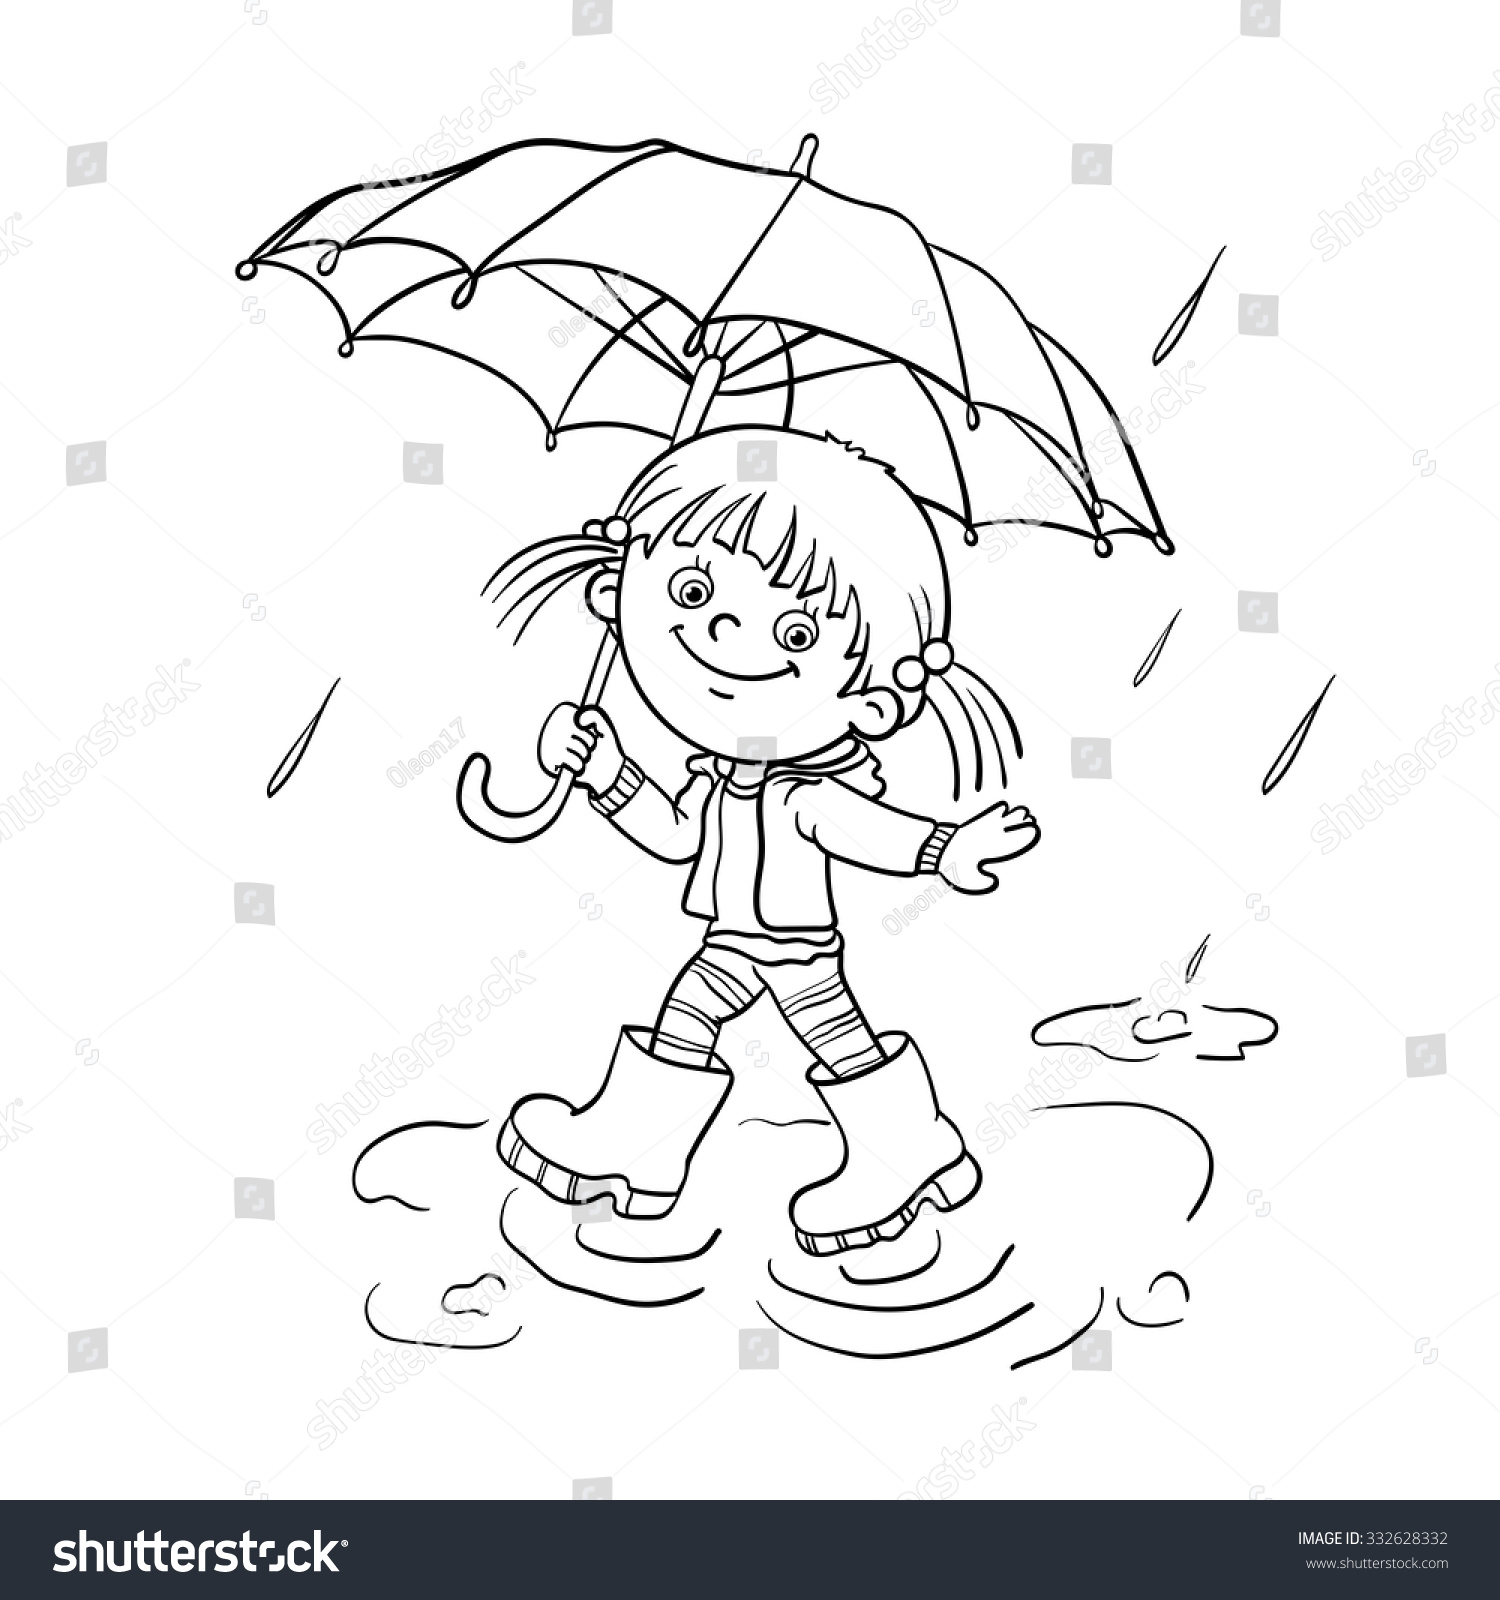 Coloring pages rainy day